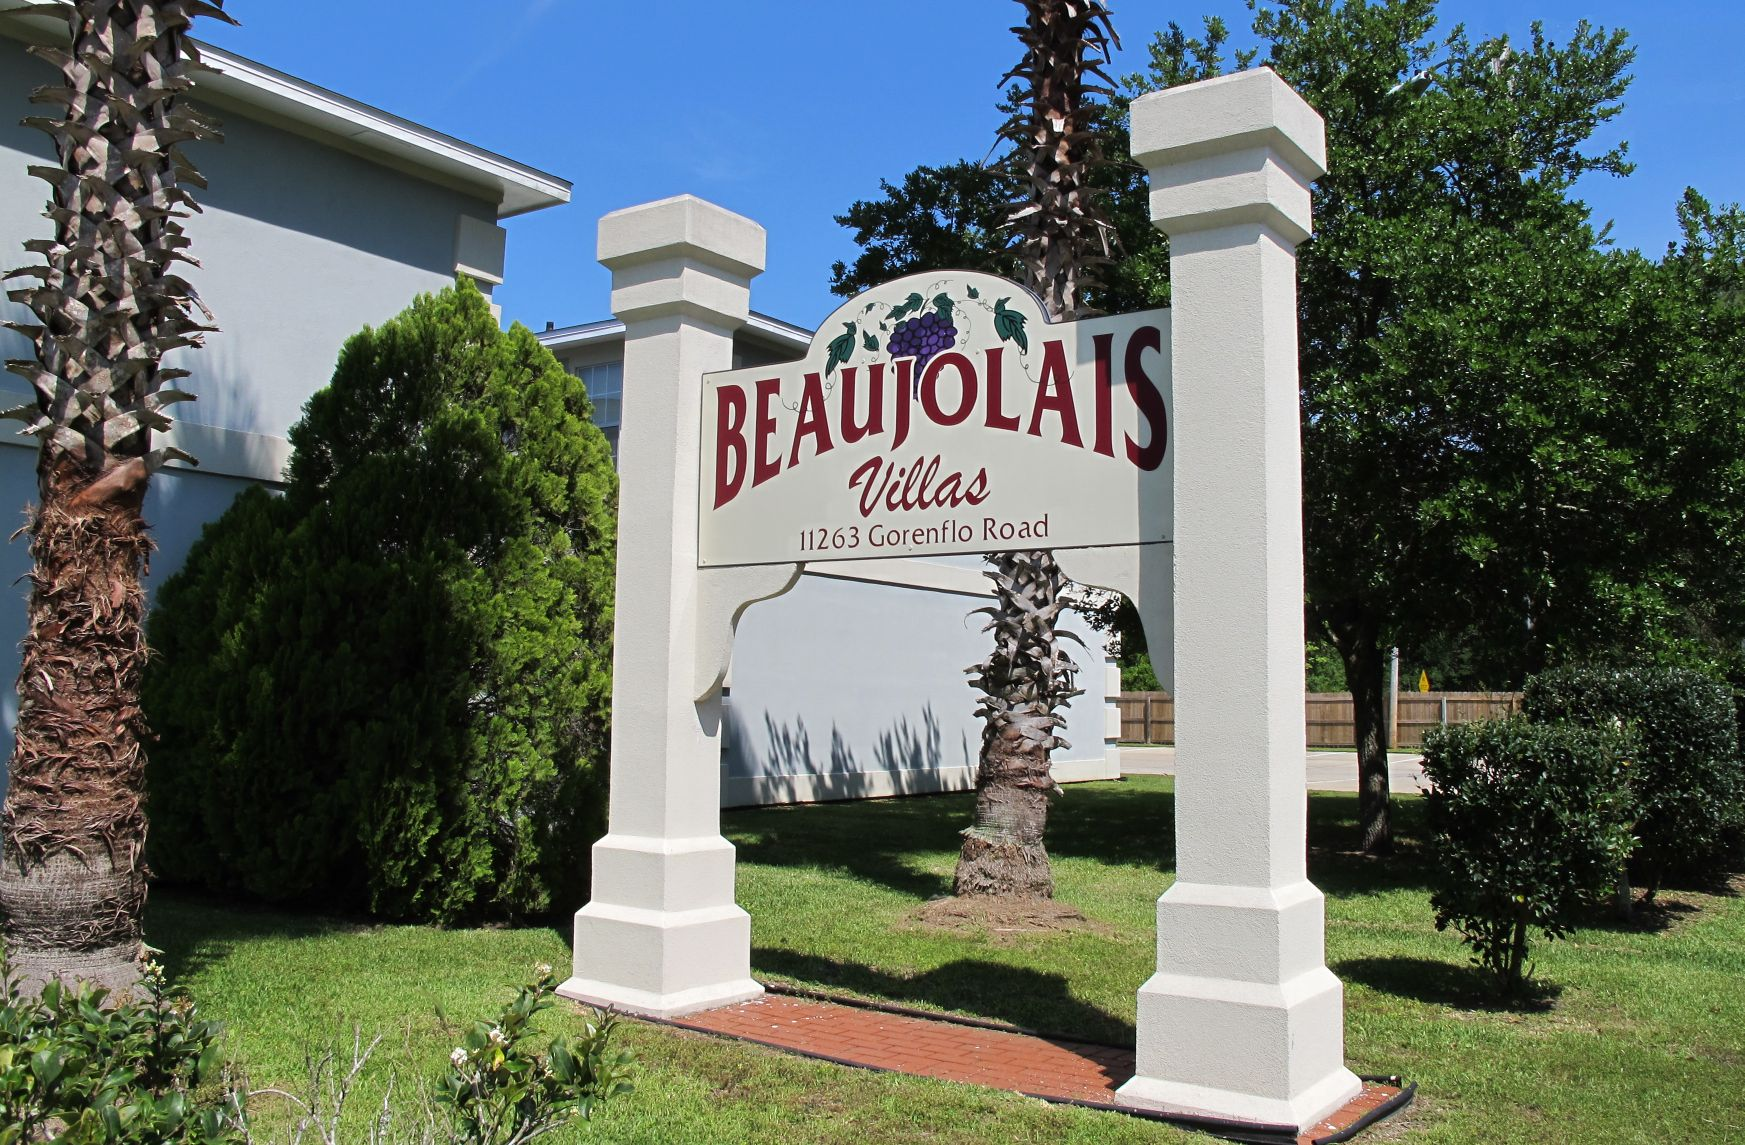 Beaujolais Villas